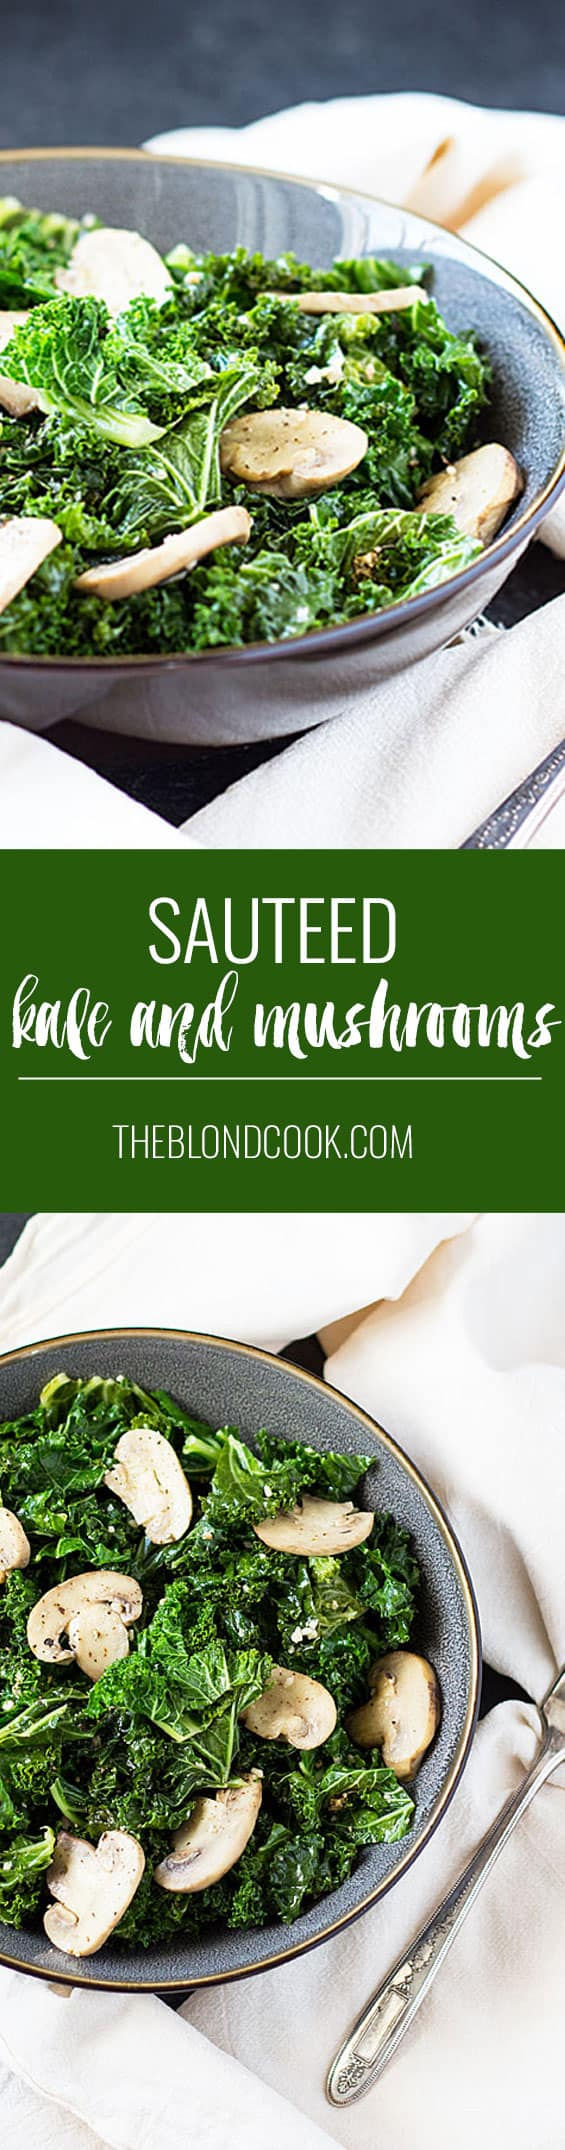 Sautéed Kale and Mushrooms - A healthy, easy and quick side dish | theblondcook.com